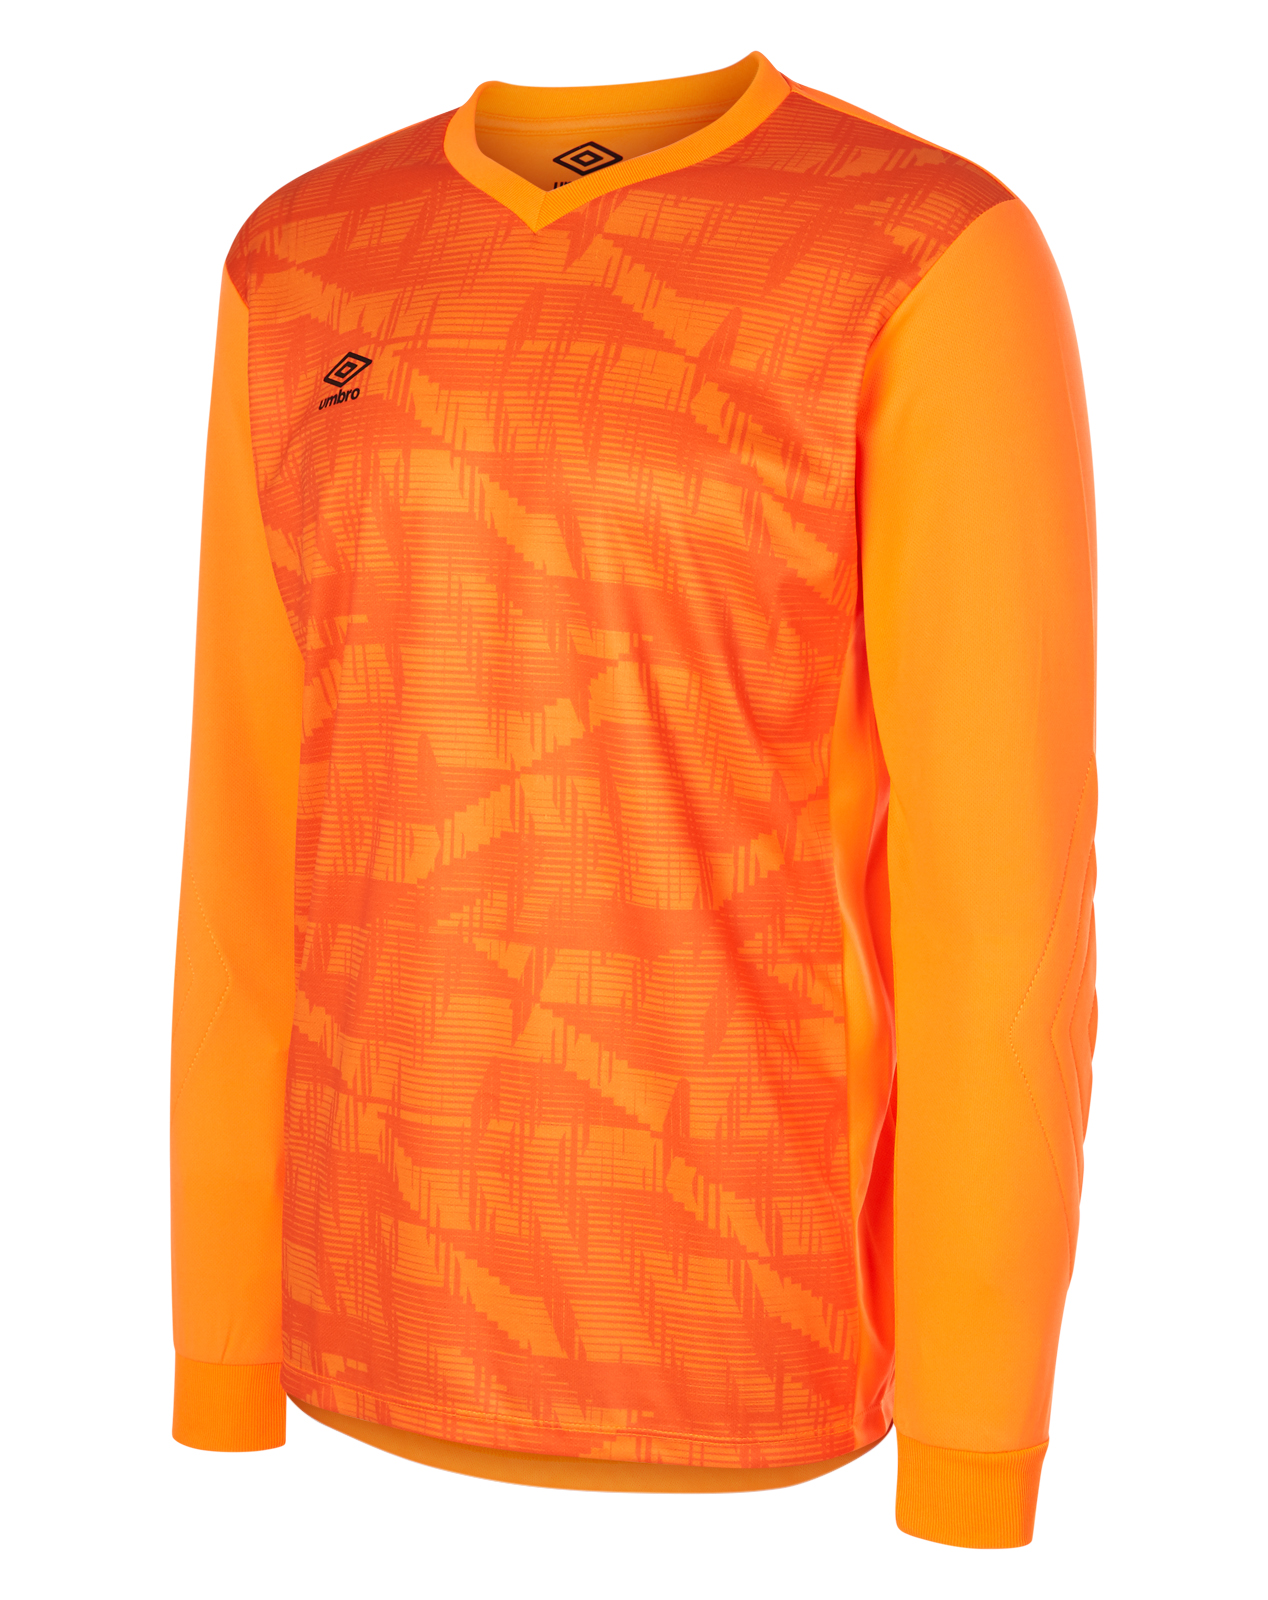 Umbro Counter Jersey in shocking orange with contrast orange main body and single colour long sleeve